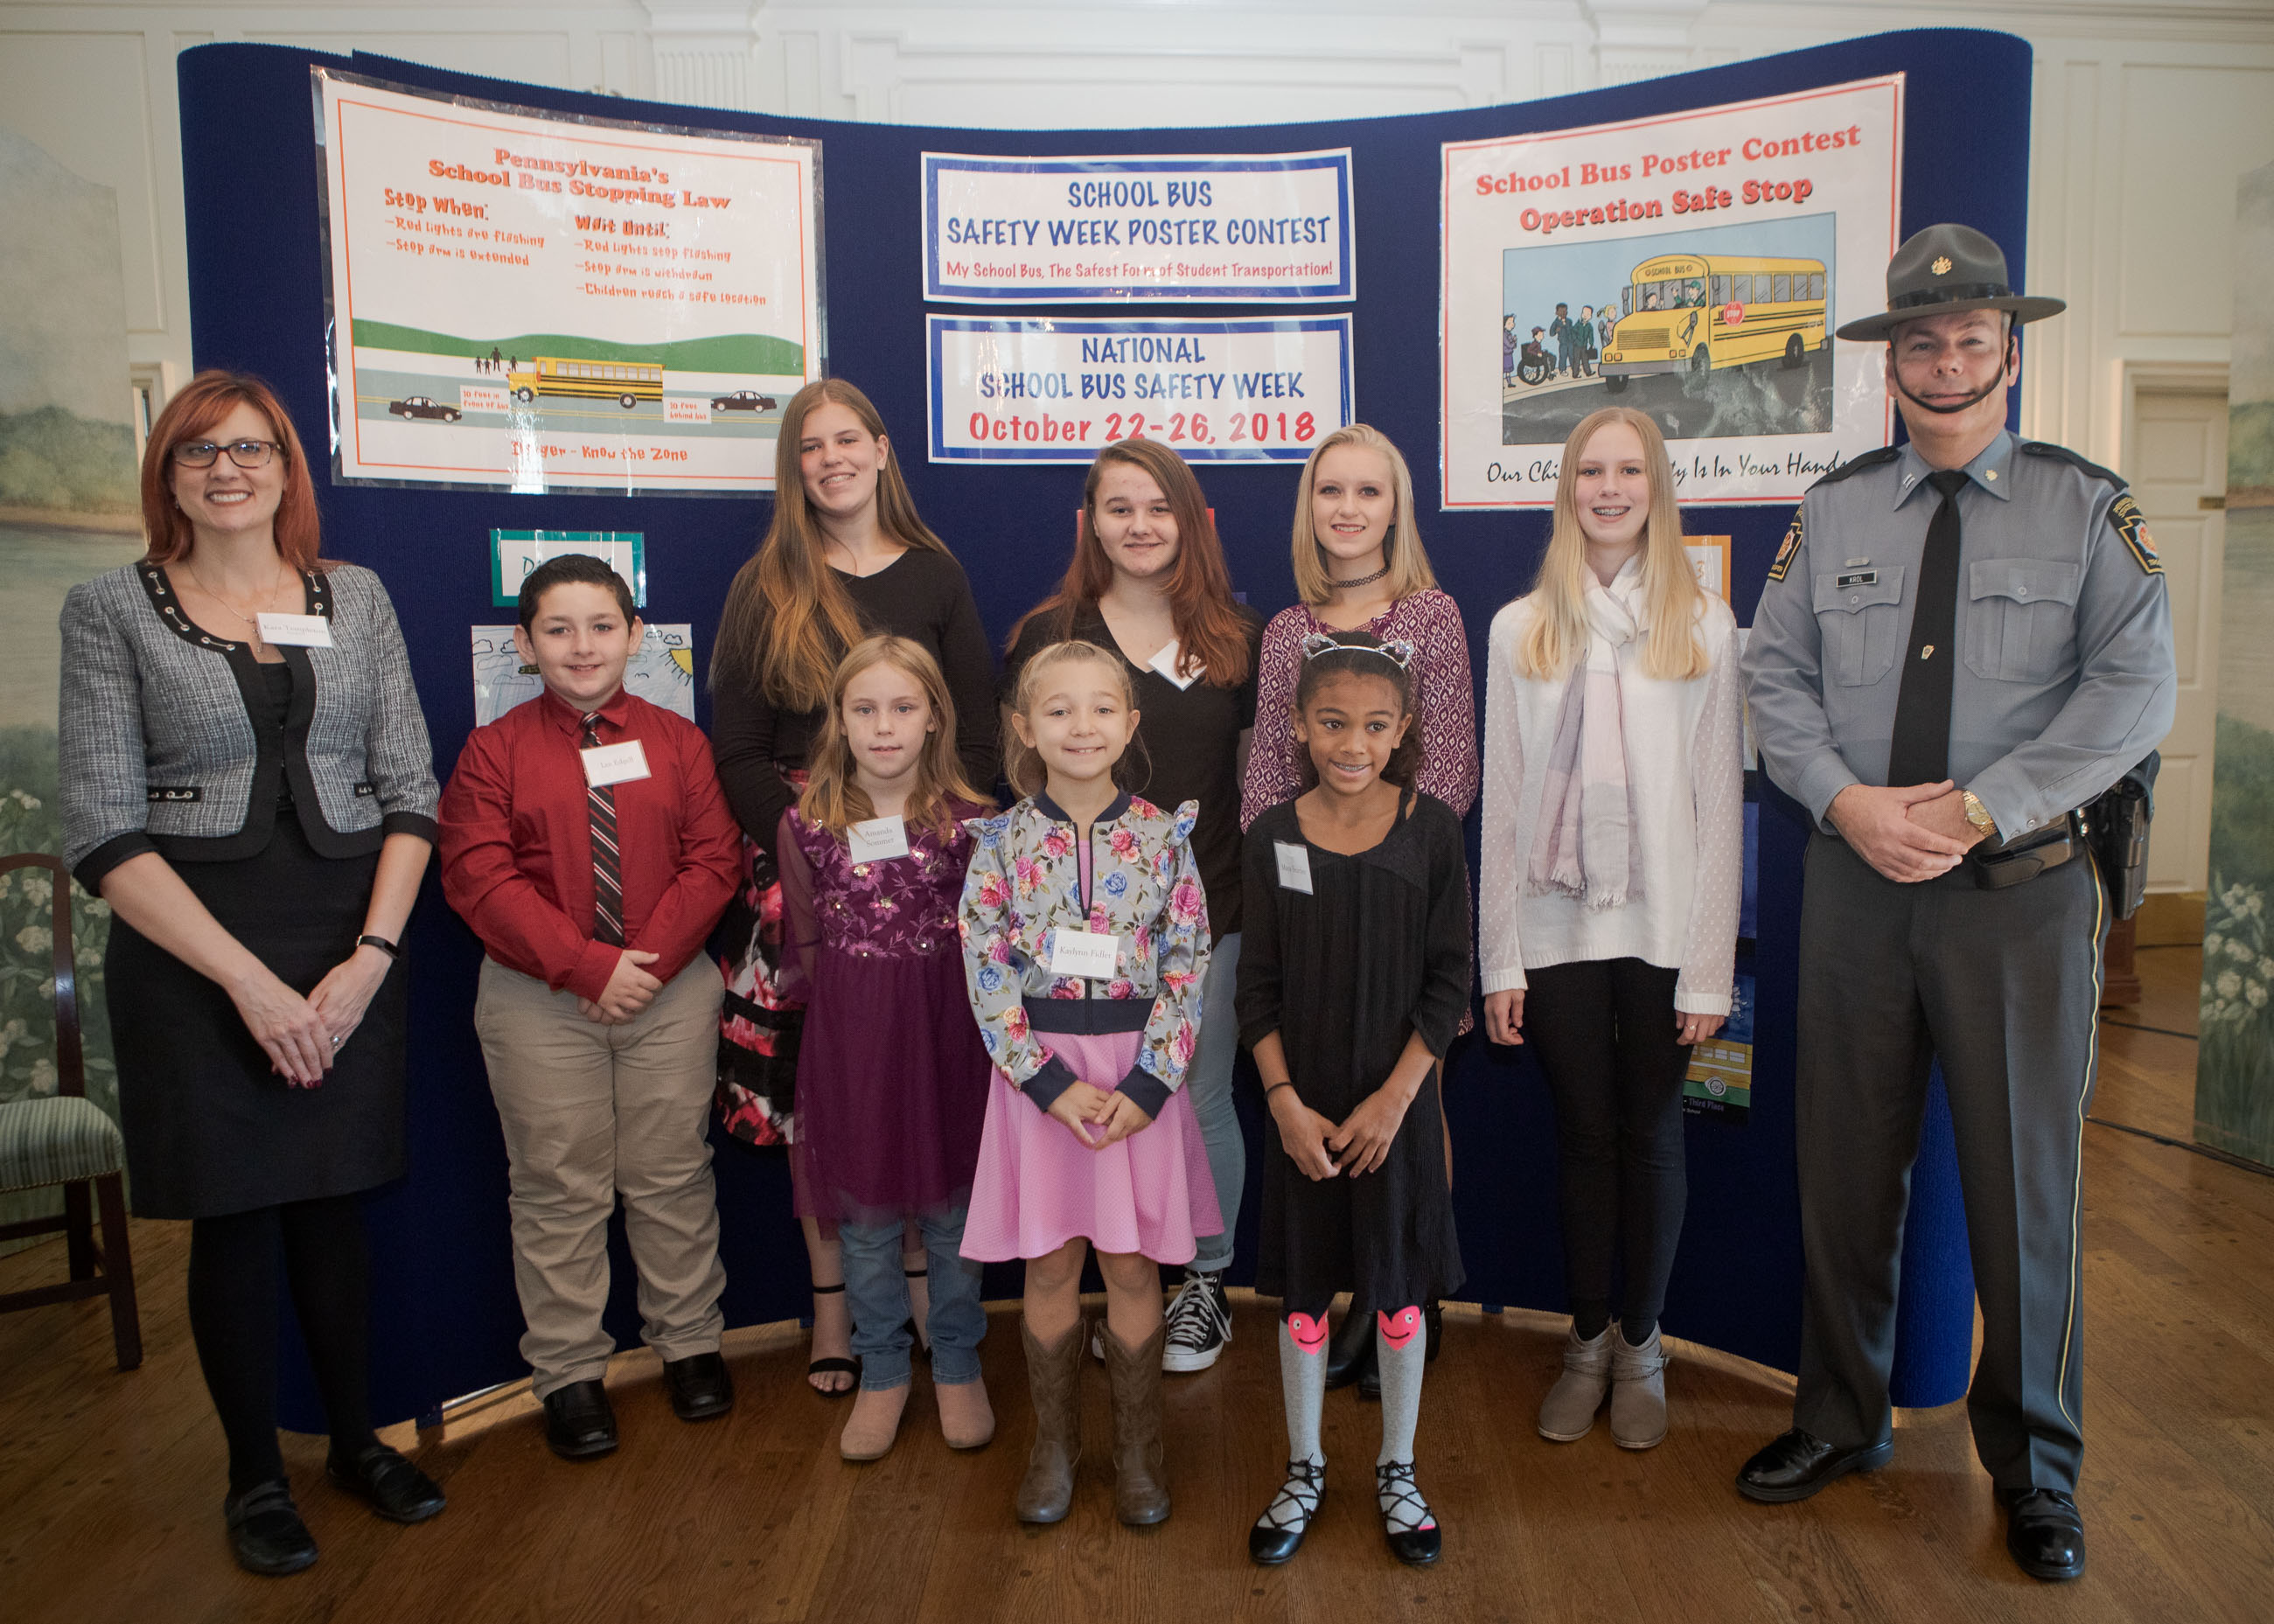 School Bus Safety Poster Contest Winners